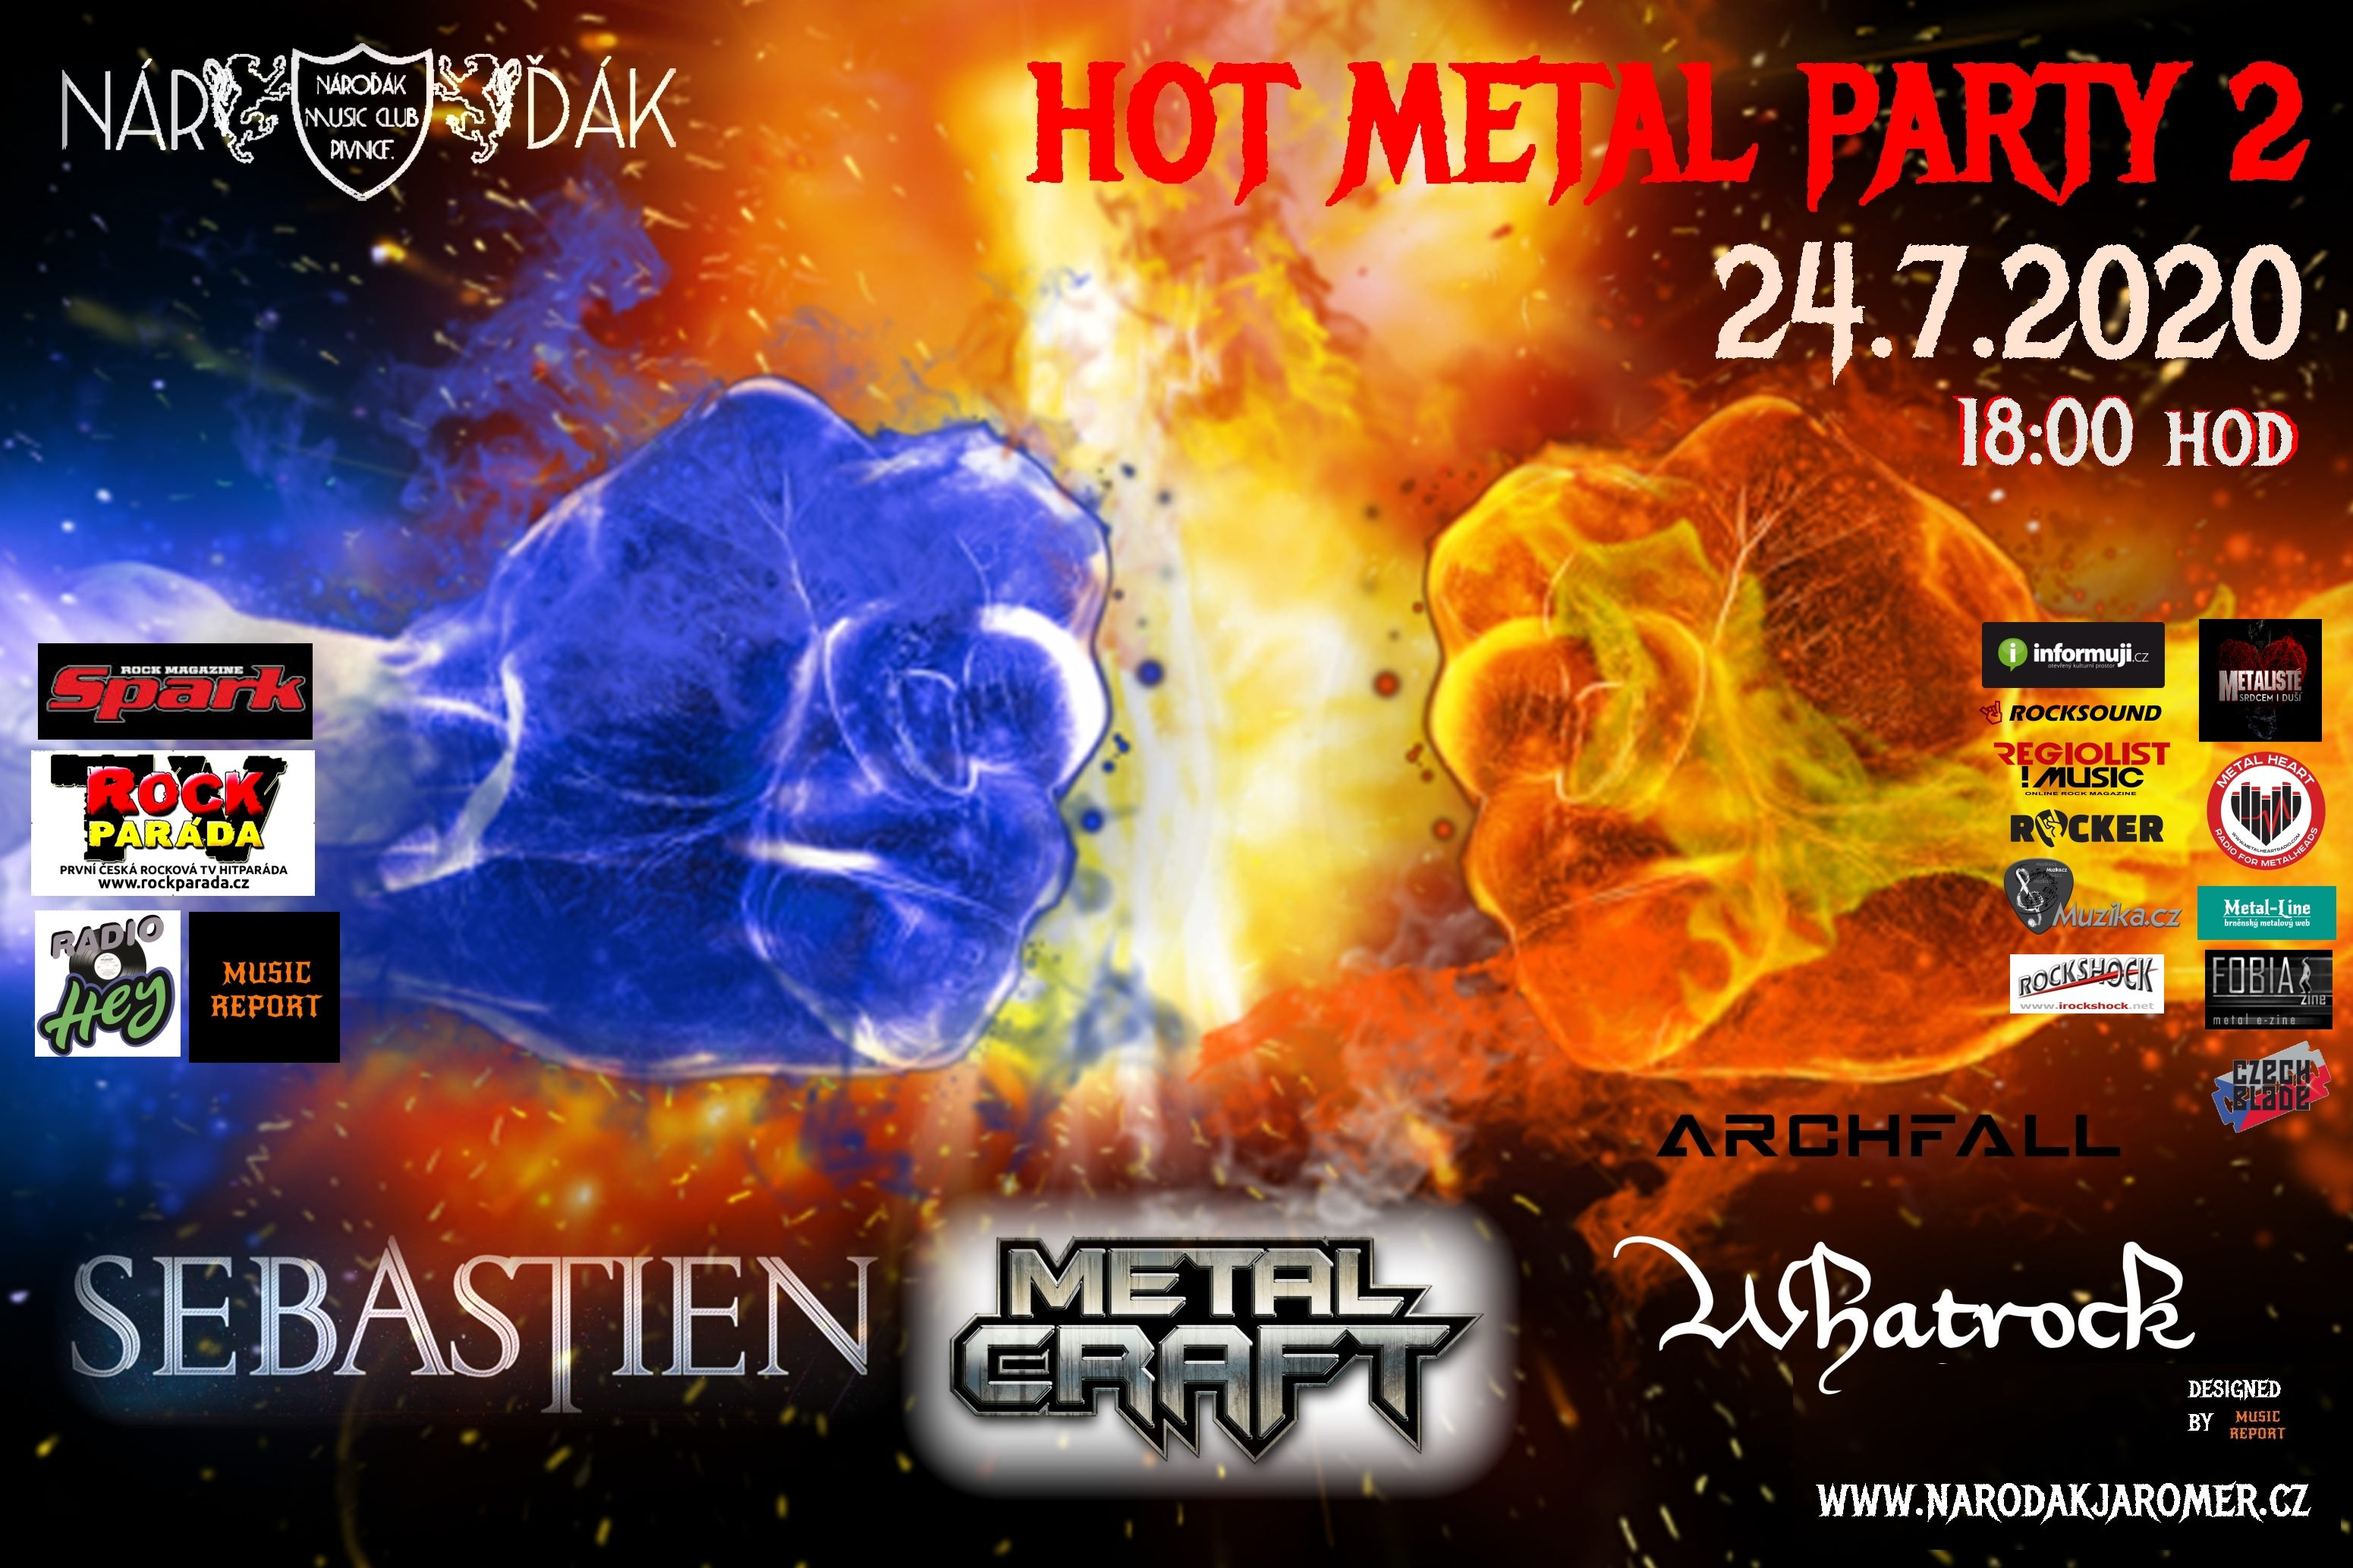 24.7.2020 HOT METAL PARTY II.